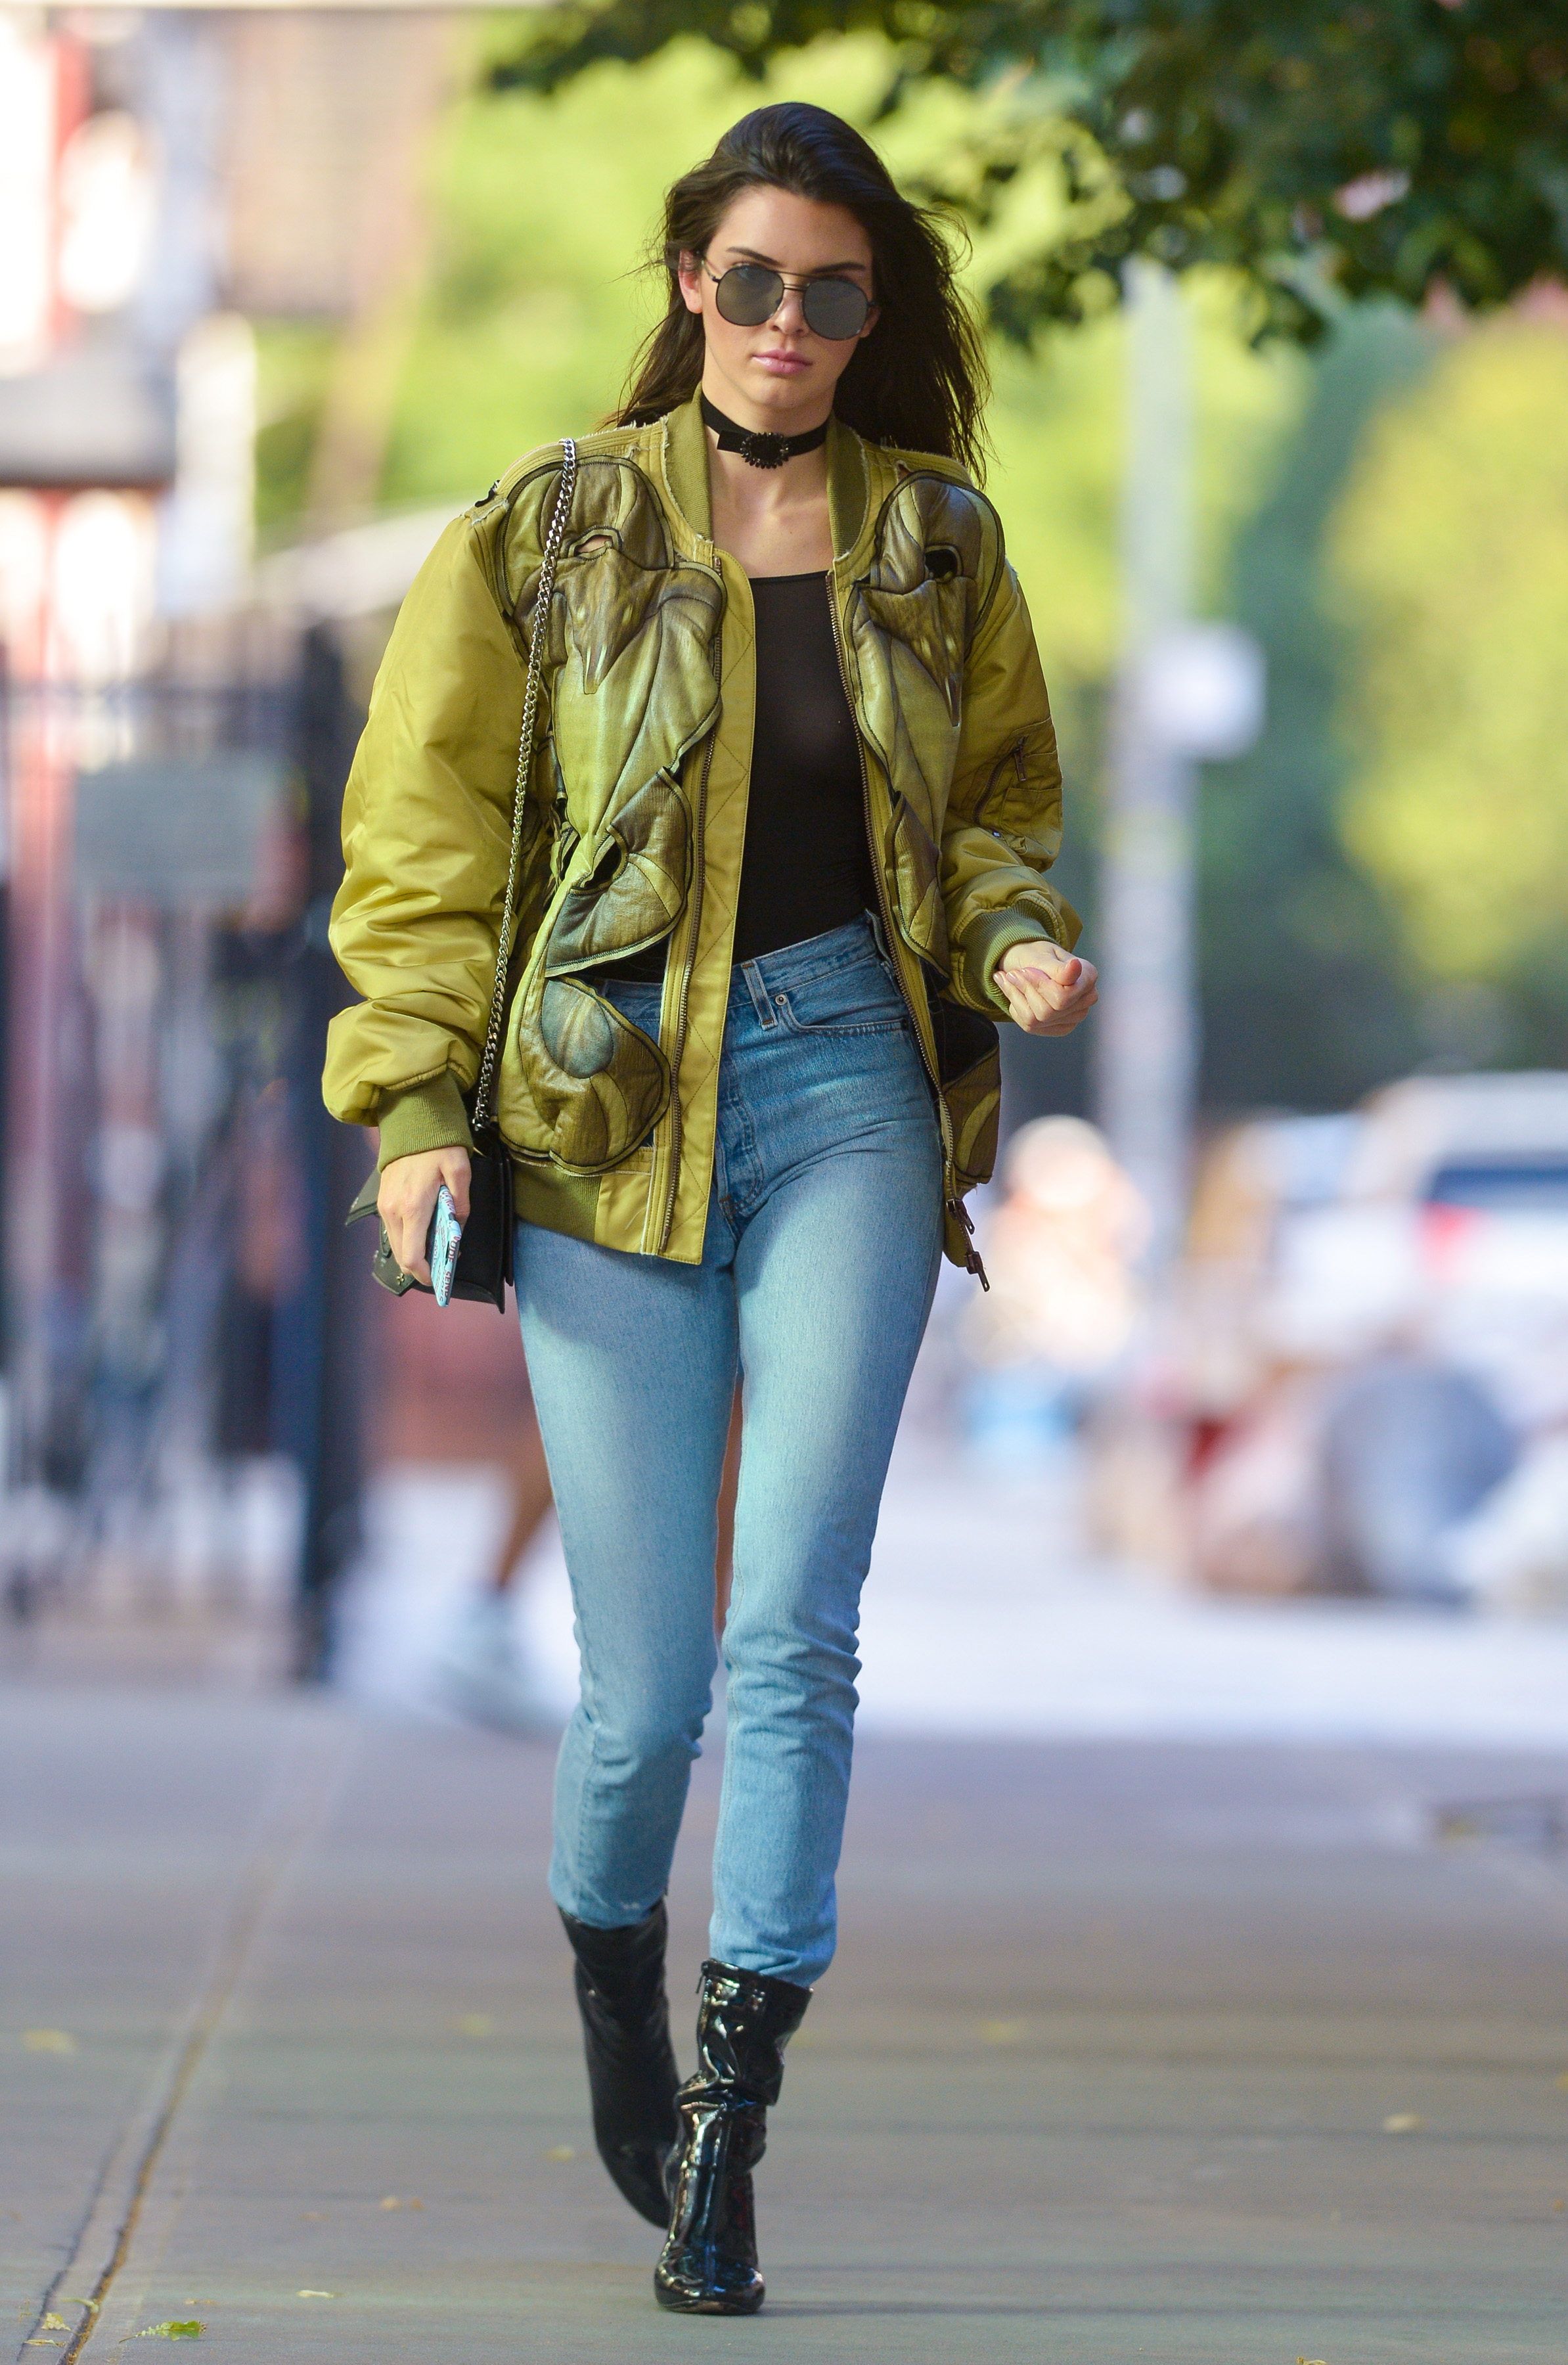 Kendall Jenner wears a black choker, a green jacket and jeans as she is seen walking in downtown Manhattan Pictured: Kendall Jenner Ref: SPL1305782 210616 Picture by: Wylde / Splash News Splash News and Pictures Los Angeles:310-821-2666 New York: 212-619-2666 London: 870-934-2666 photodesk@splashnews.com